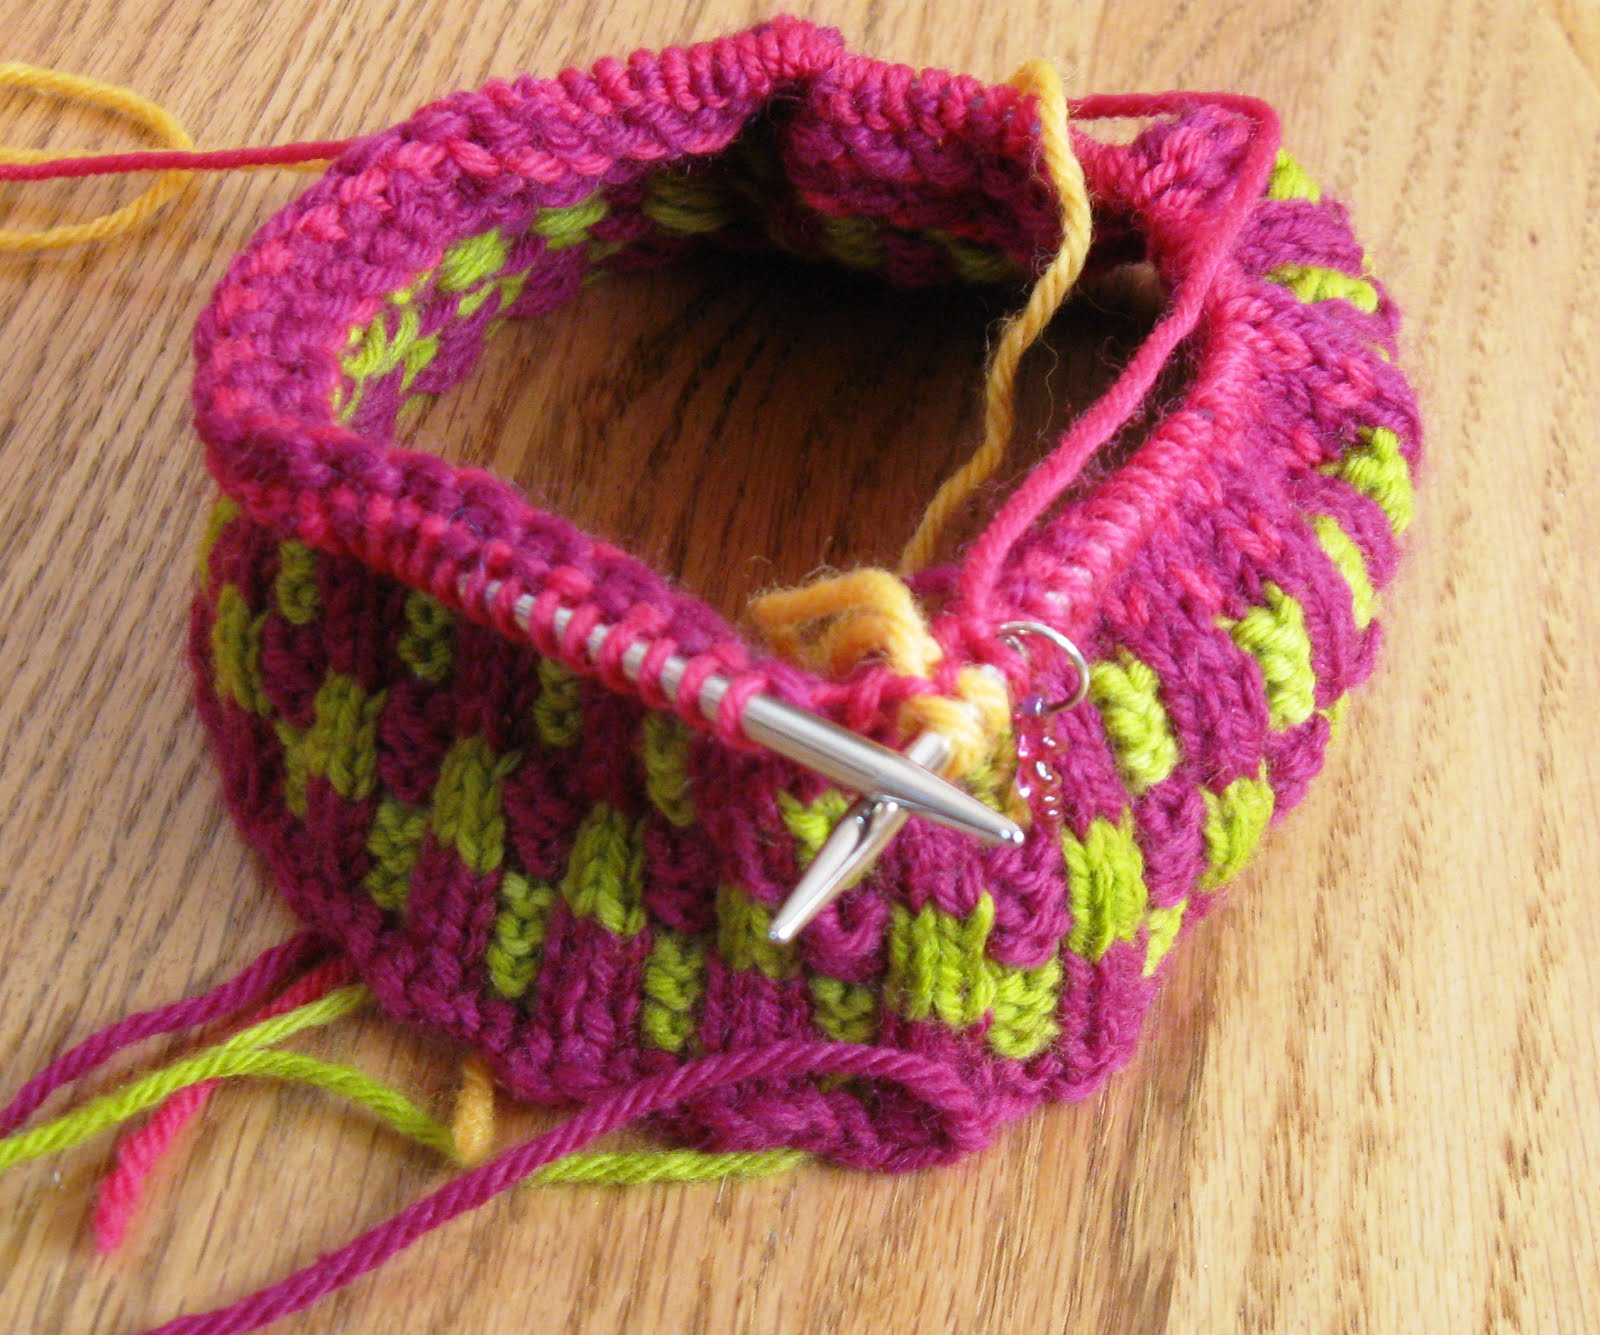 Knitted Sock Patterns On Circular Needles : Kiwi Knits: About Knitting Needles